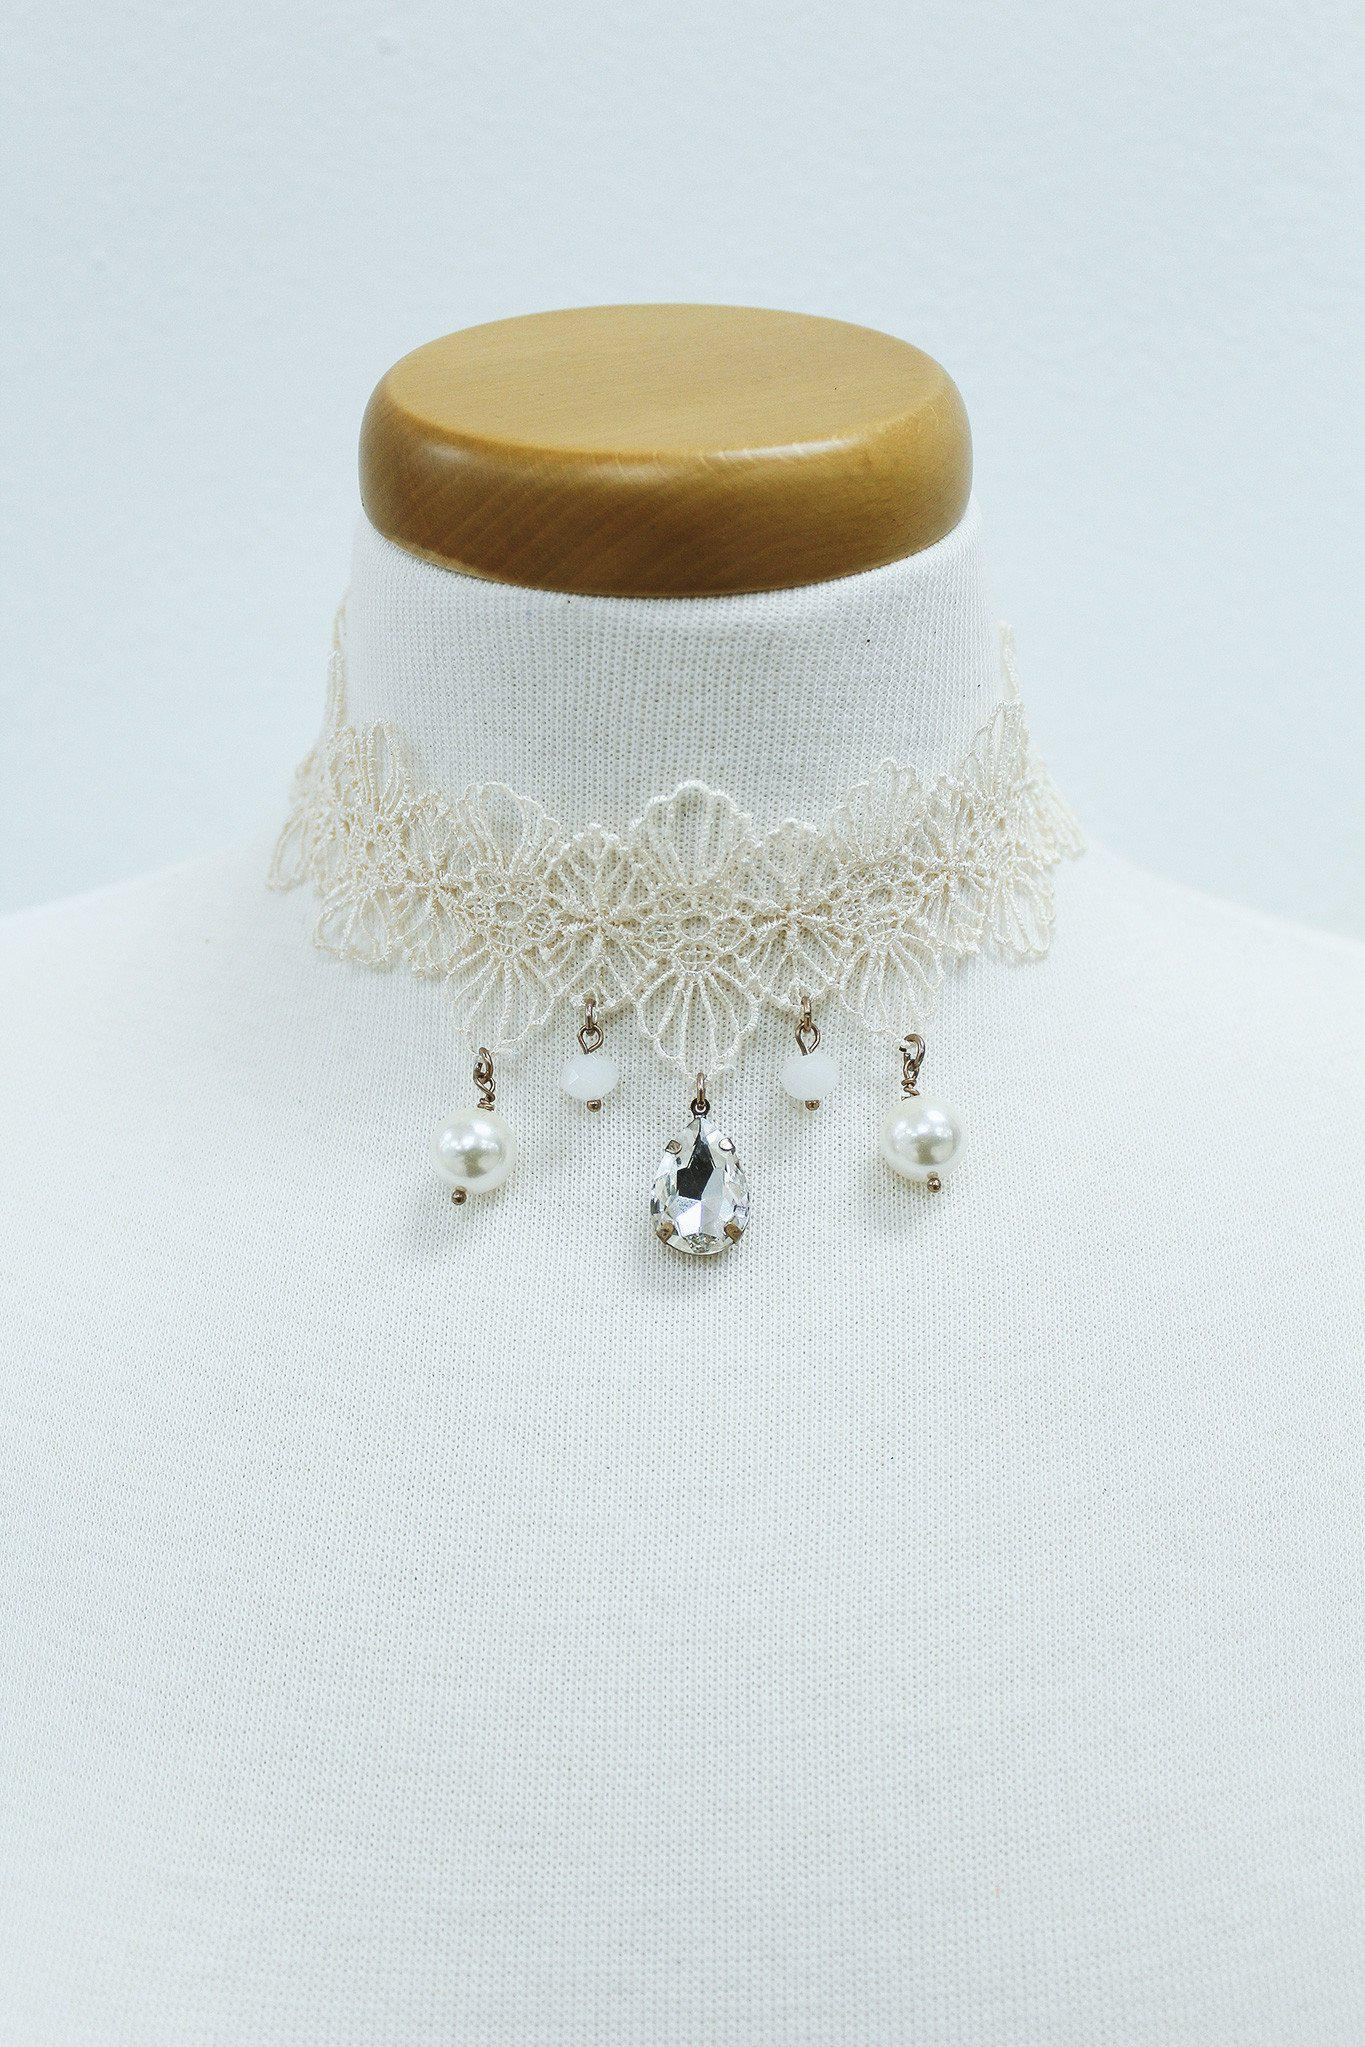 ivory crochet choker with pearls and crystal